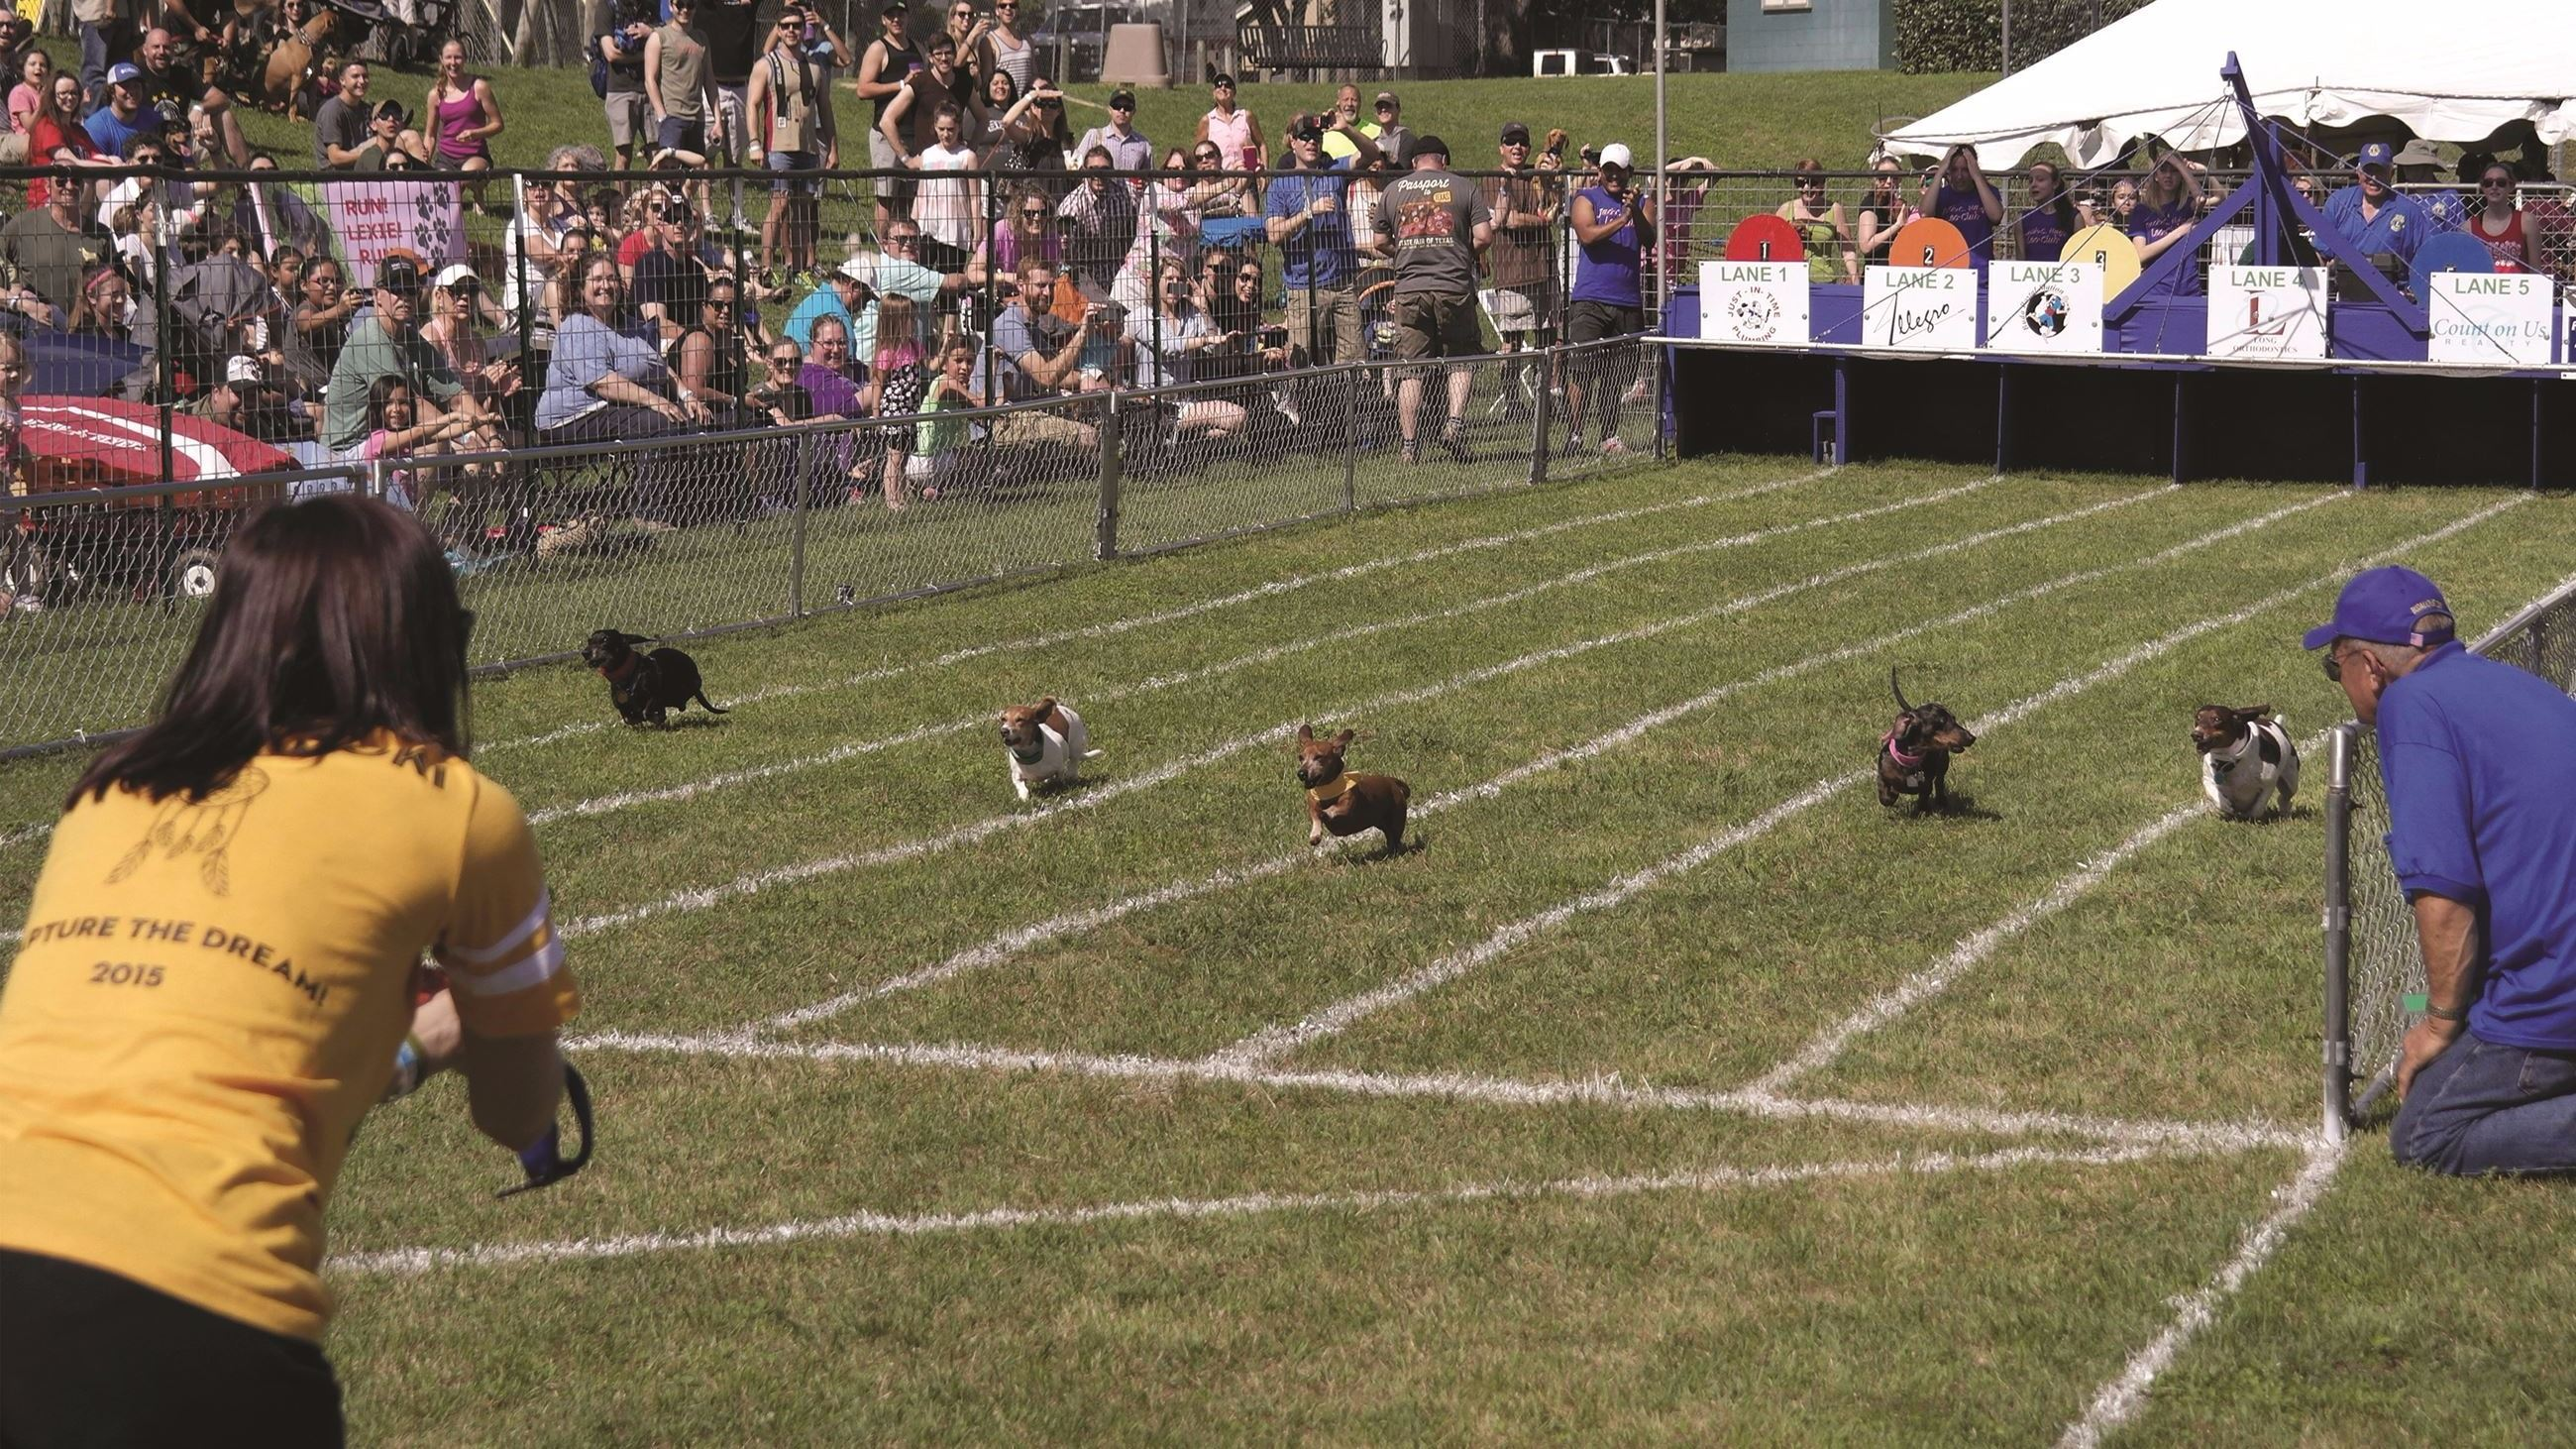 Wiener dogs racing to the finish line